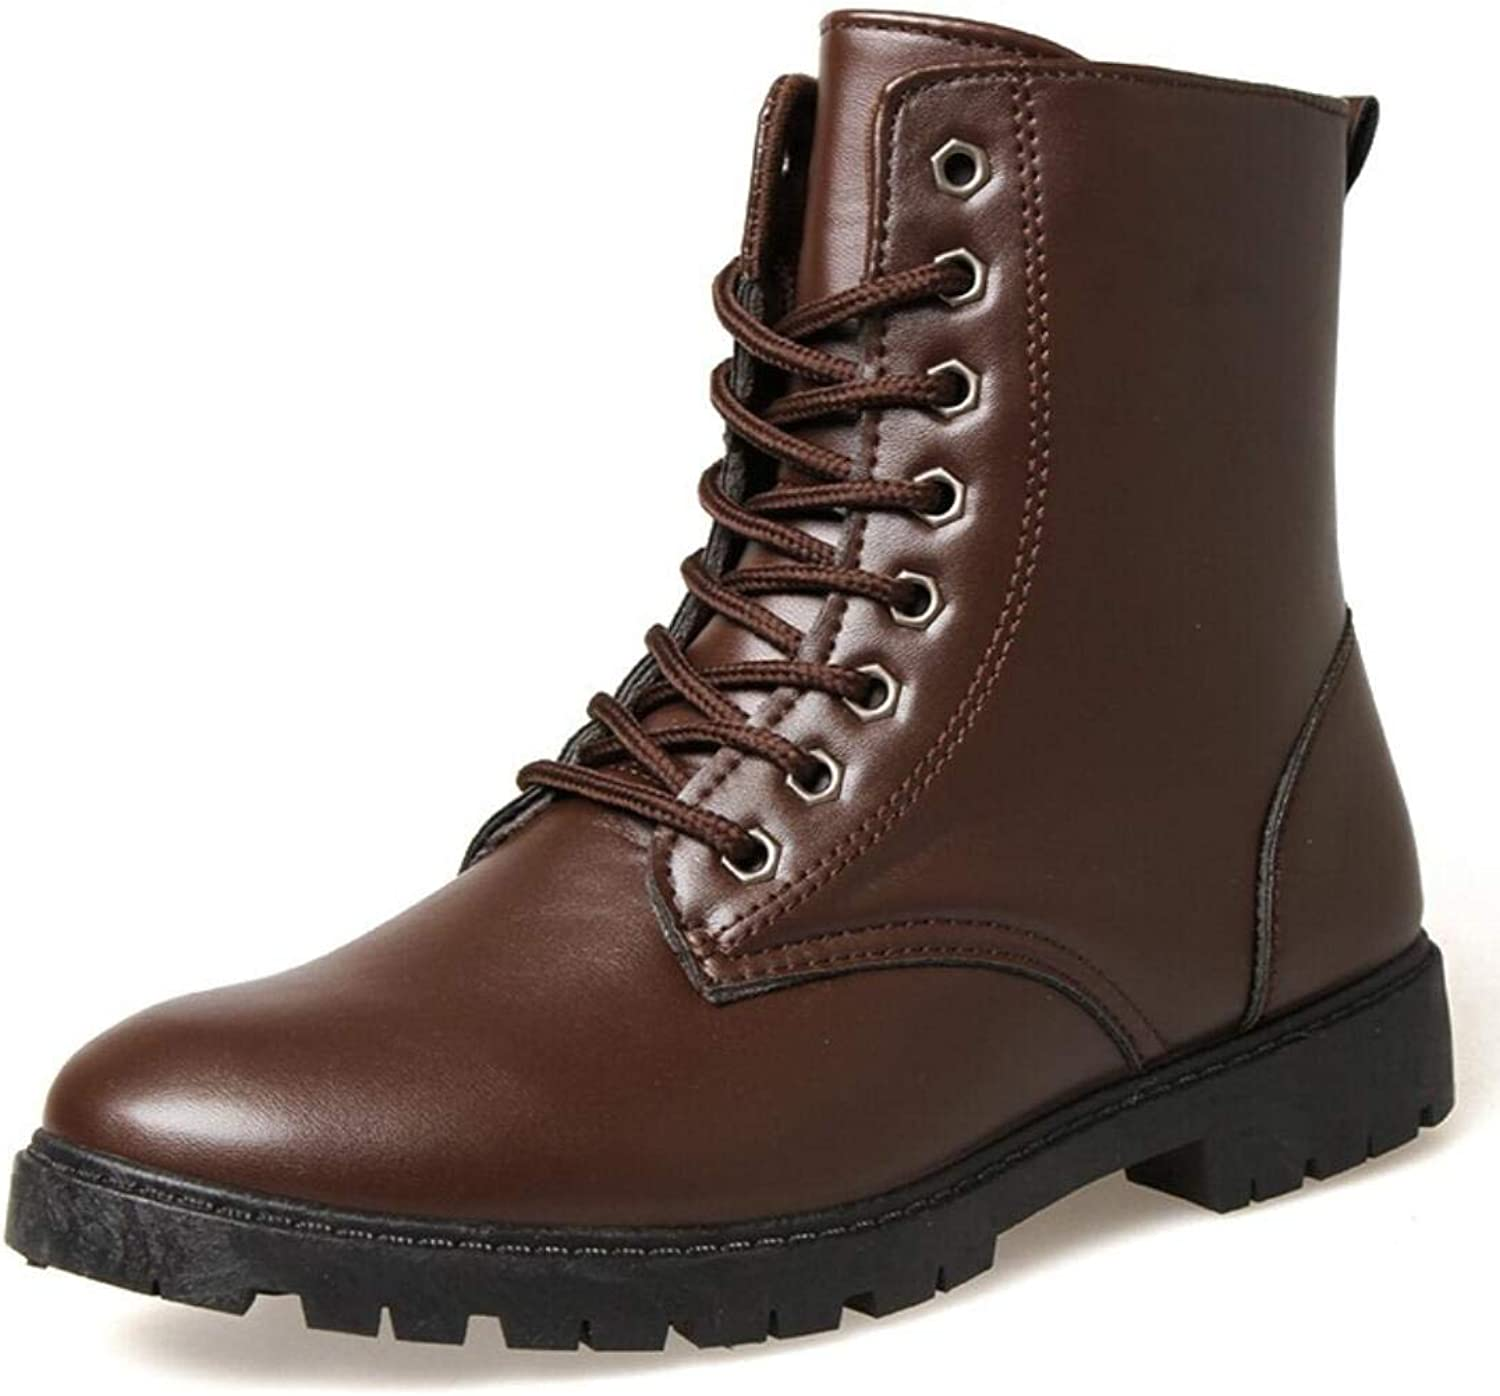 XWZG Men'S Work boots Fashion High Boots To Help Outdoor Leisure Martin Boots